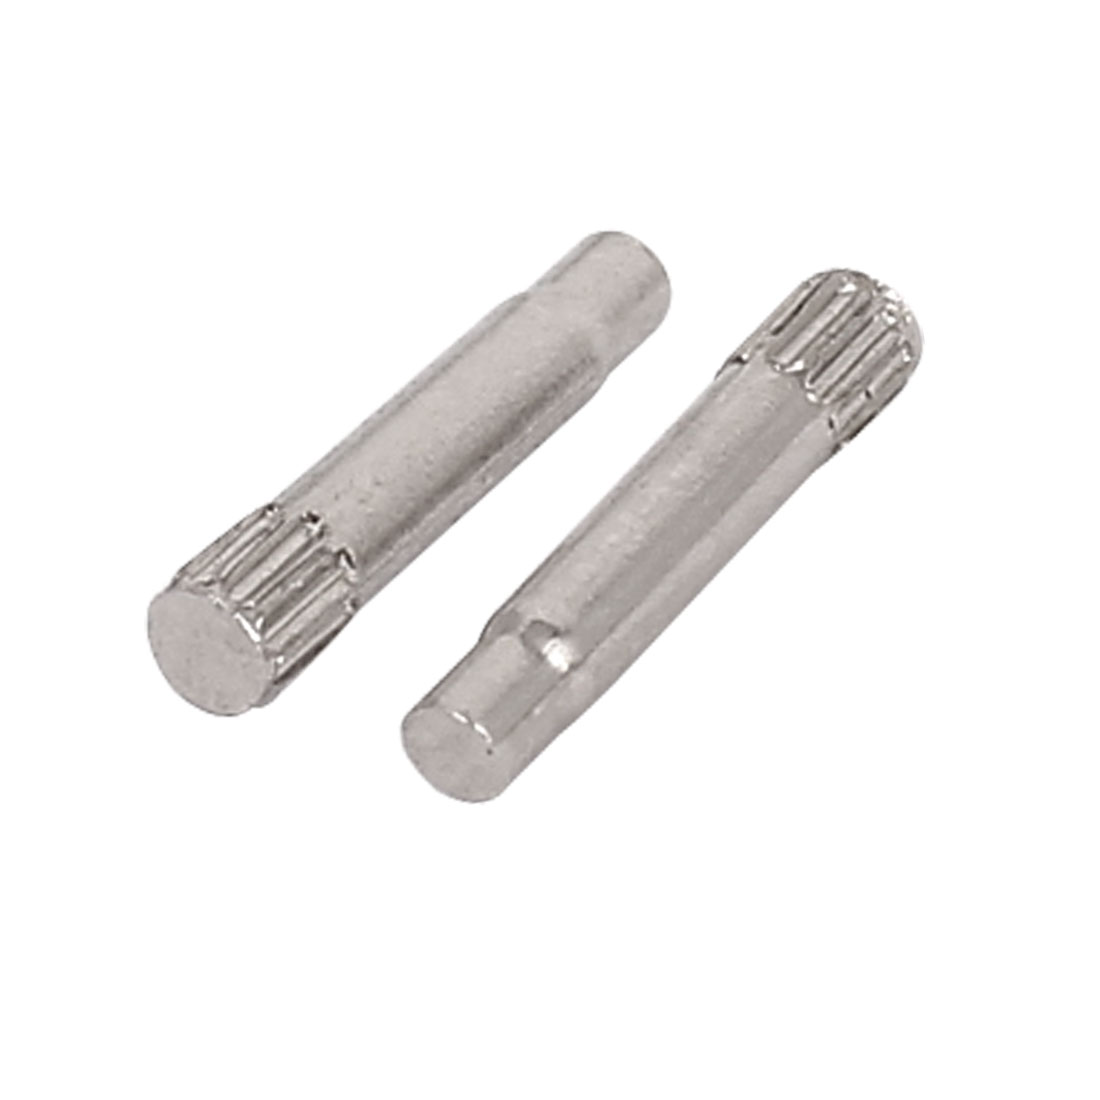 2.5mmx10mm Binding Chicago Screw Post For Leather Purse Belt Silver Tone 2pcs